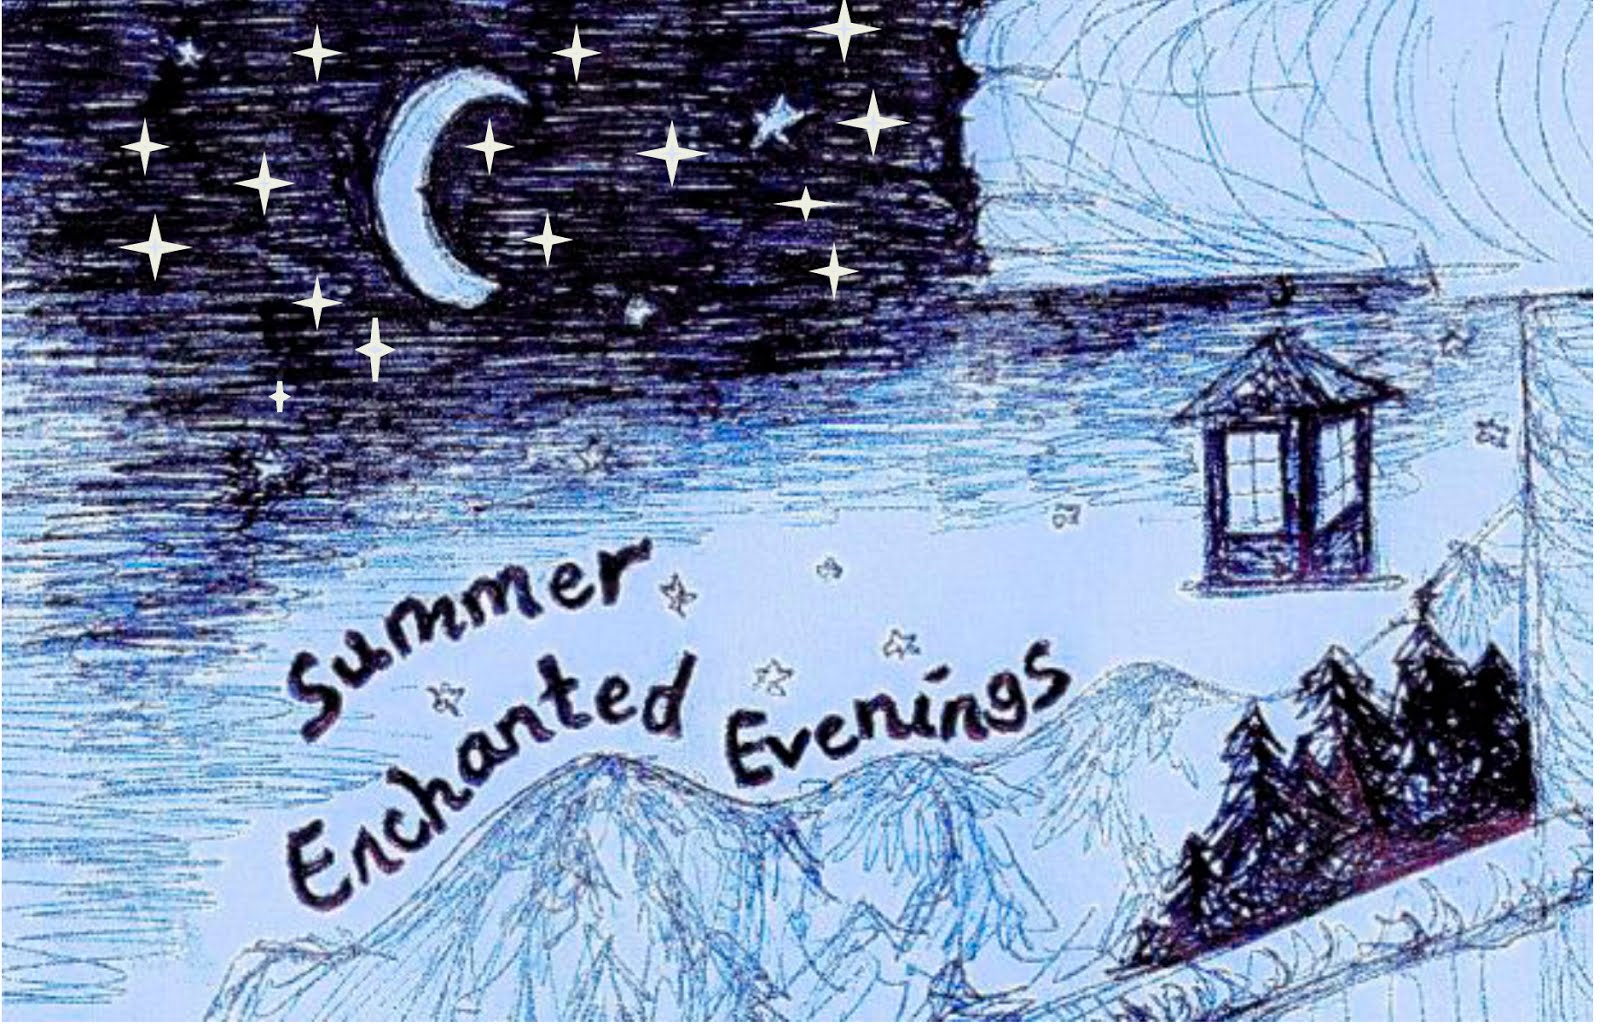 Summer Enchanted Evenings